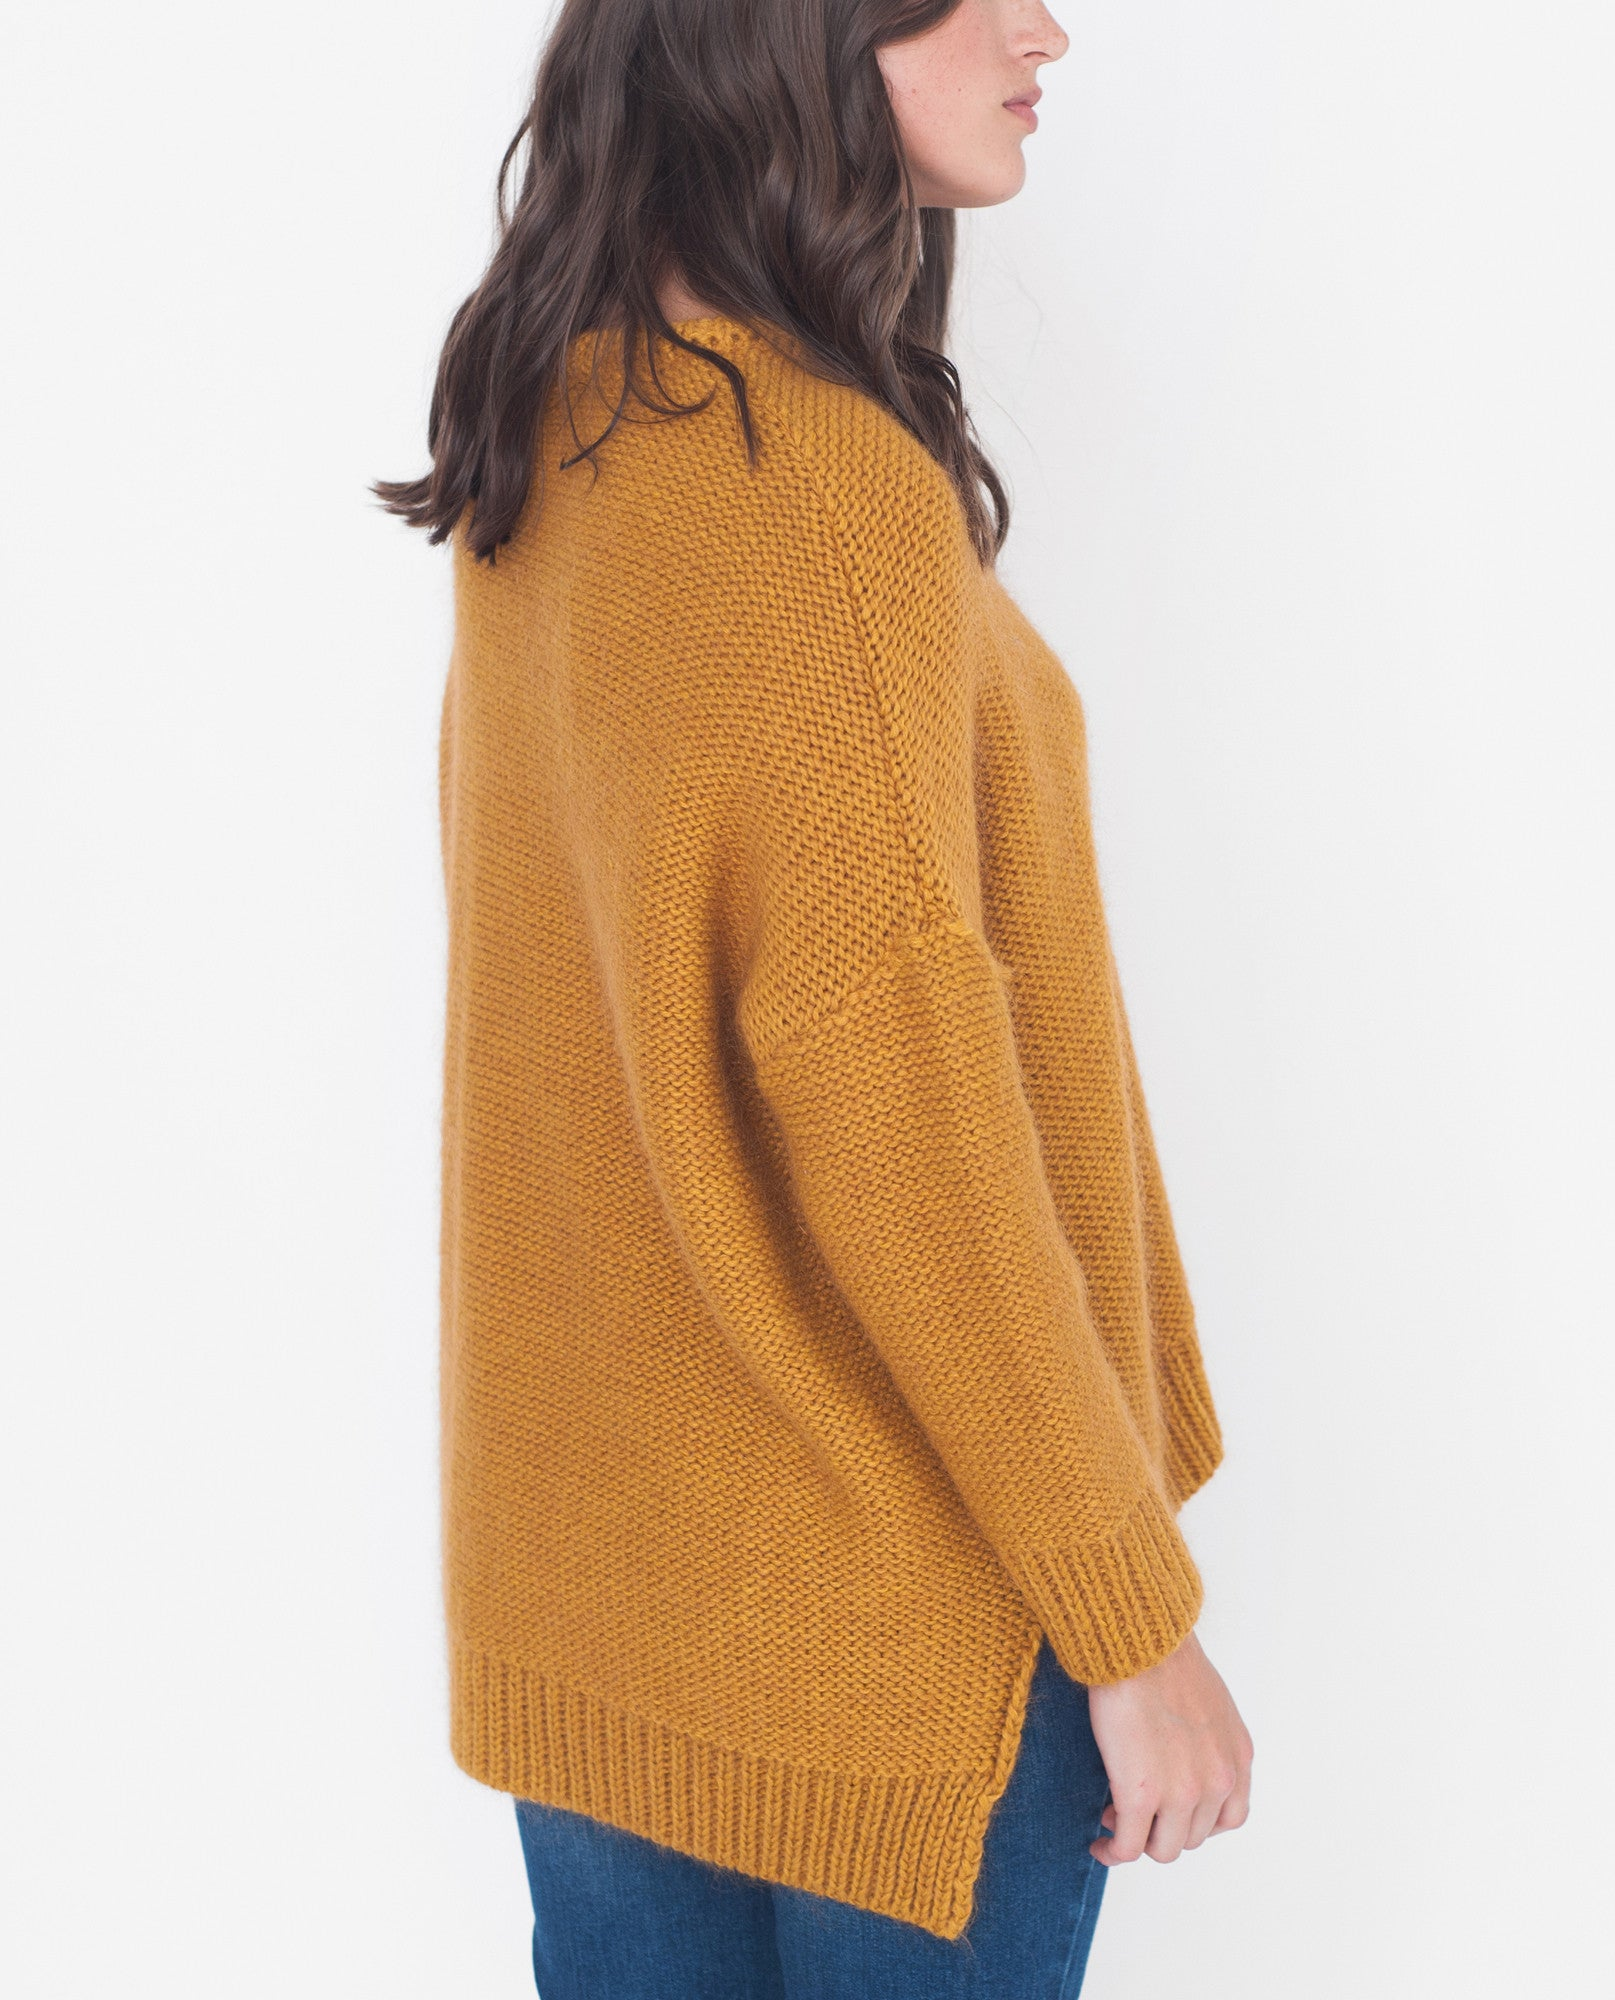 FAYE-MARIE Mohair Knitted Jumper In Yellow